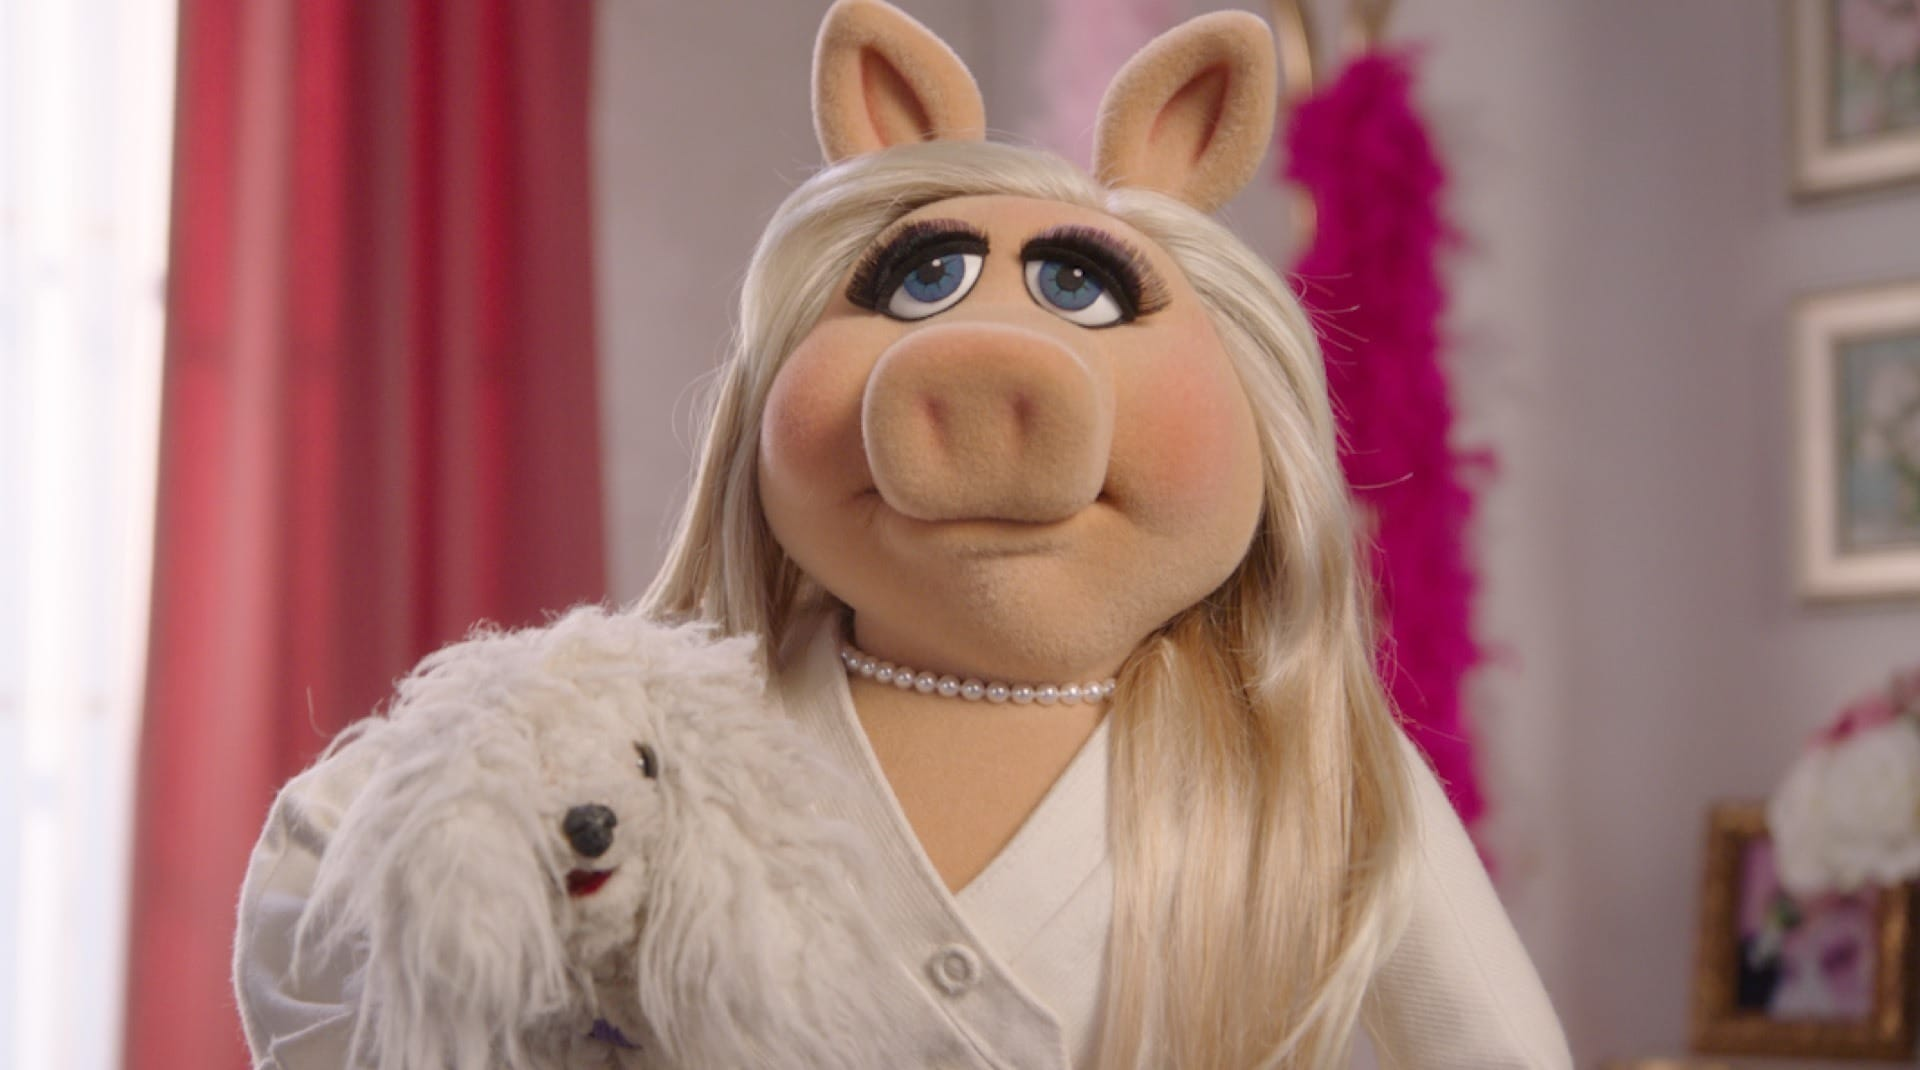 A still from Muppets Now